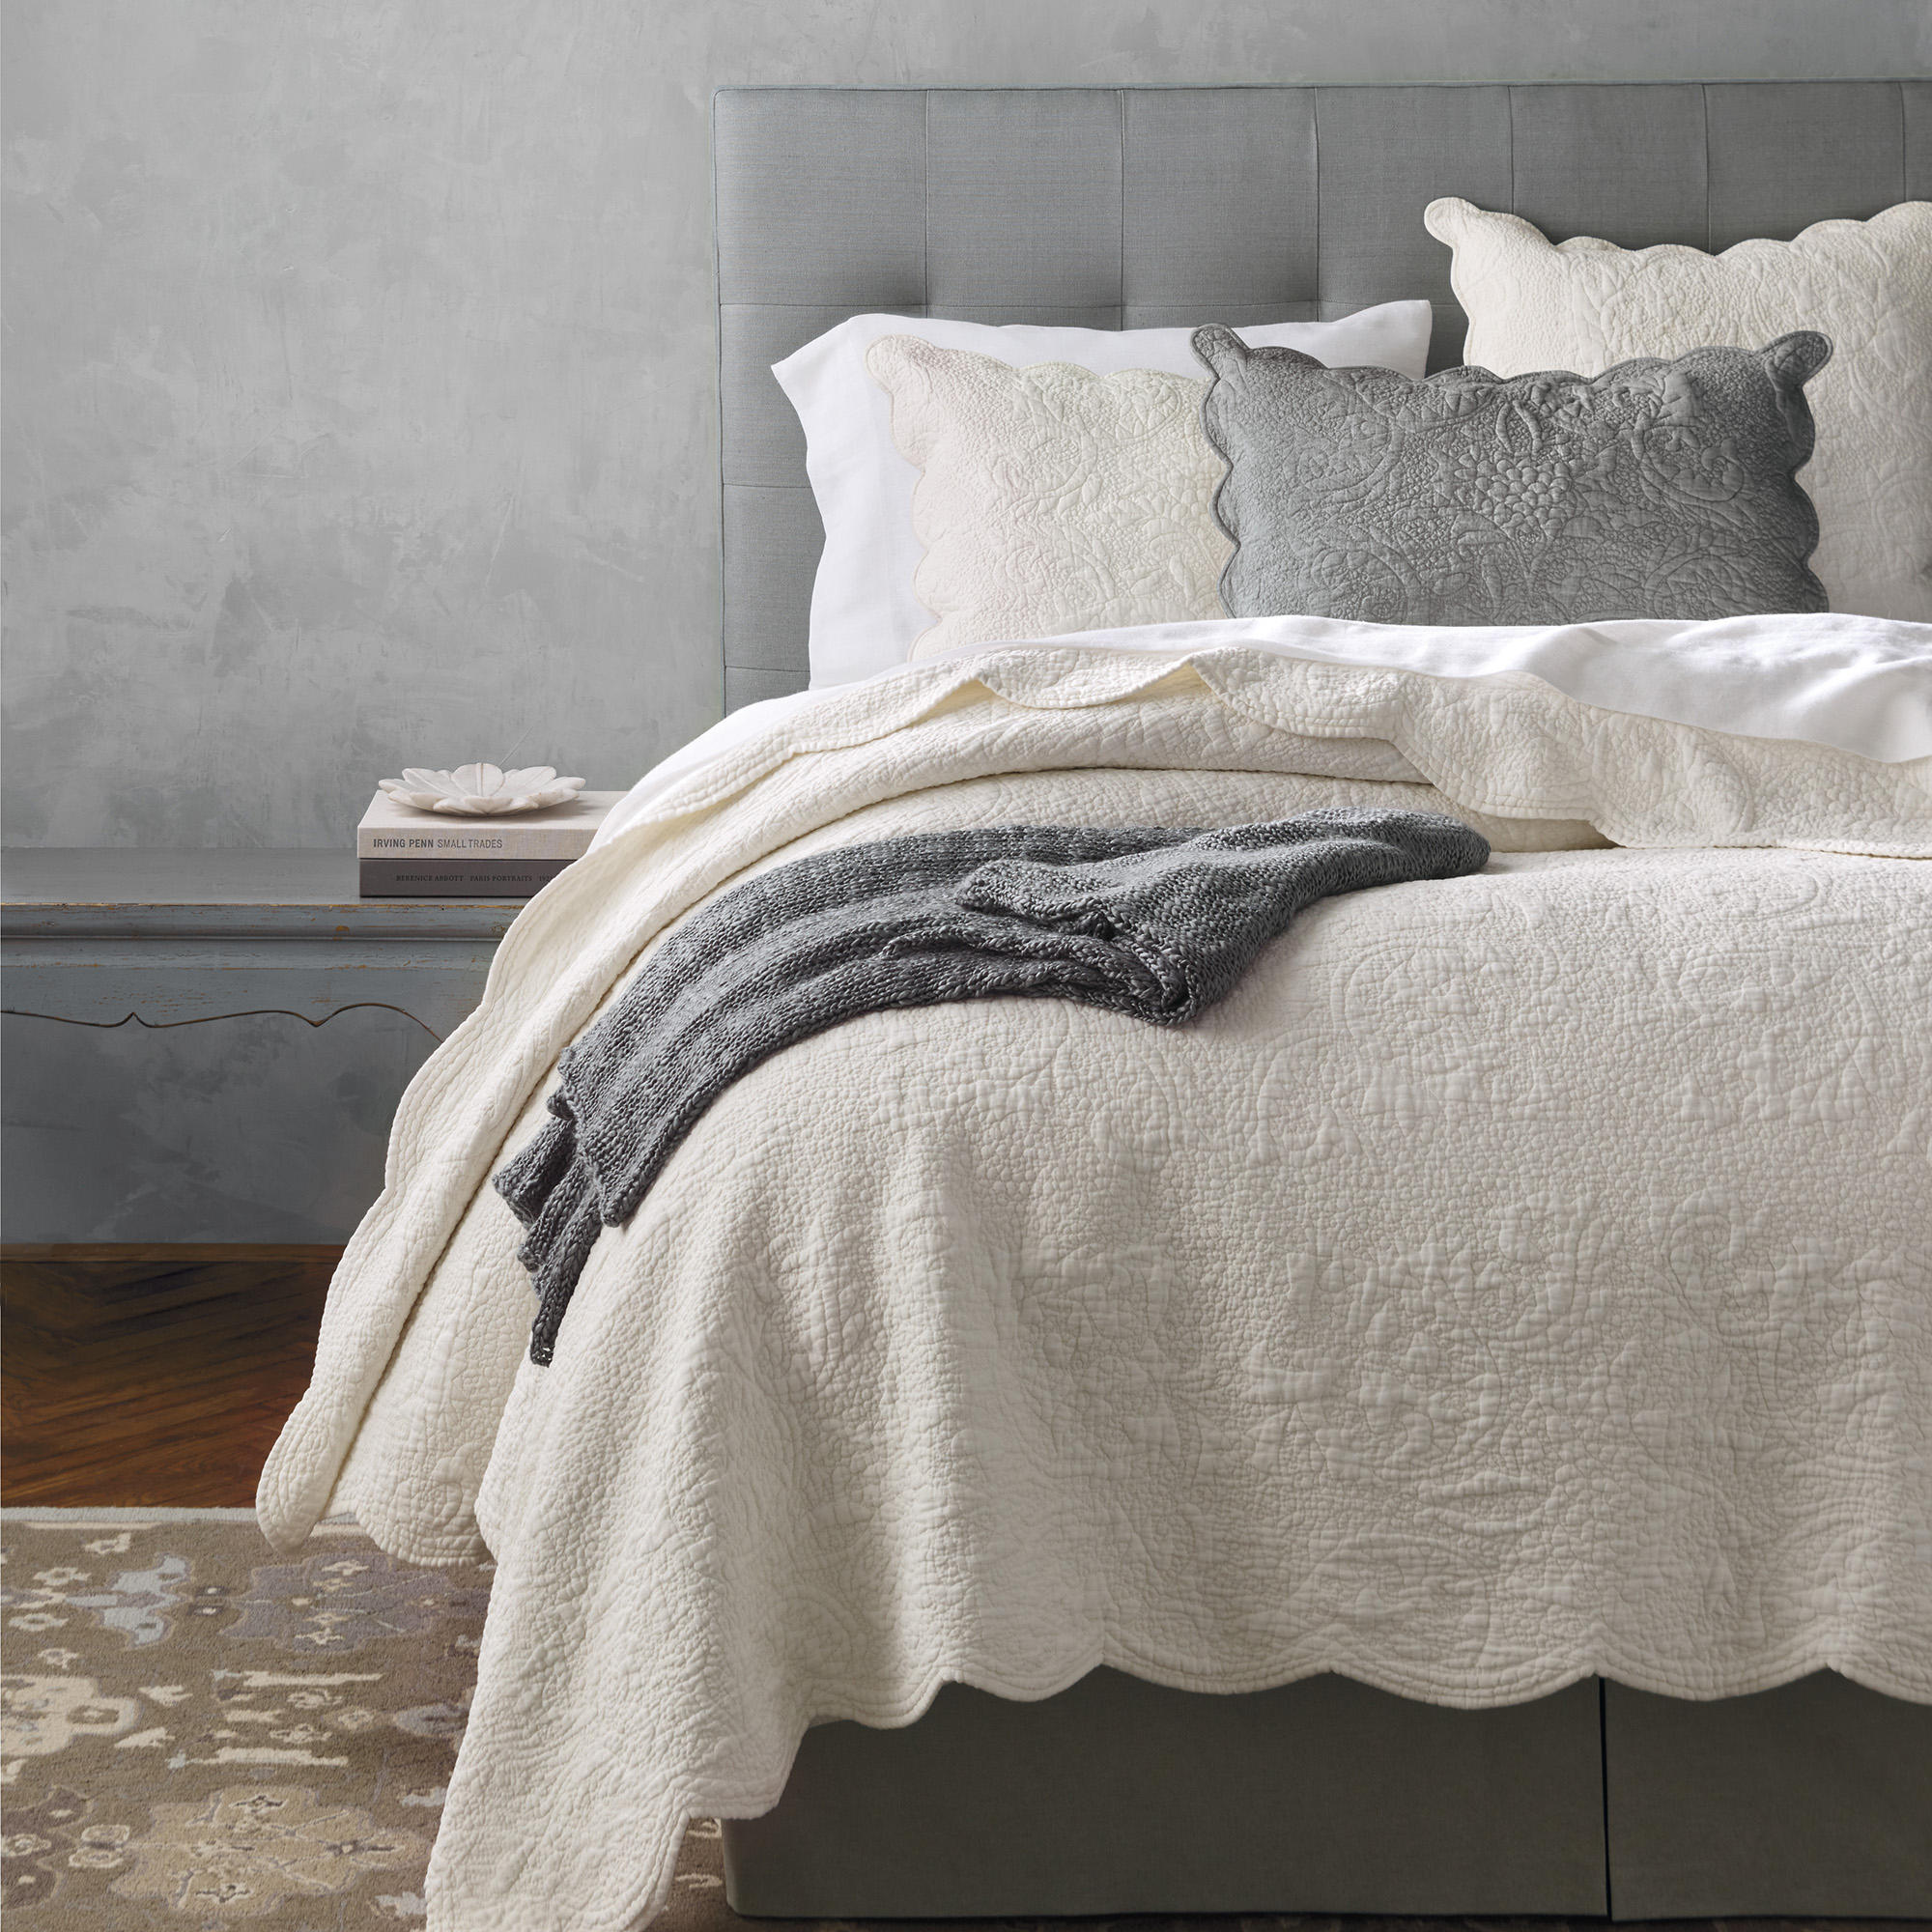 Kentfield Linen Bedding